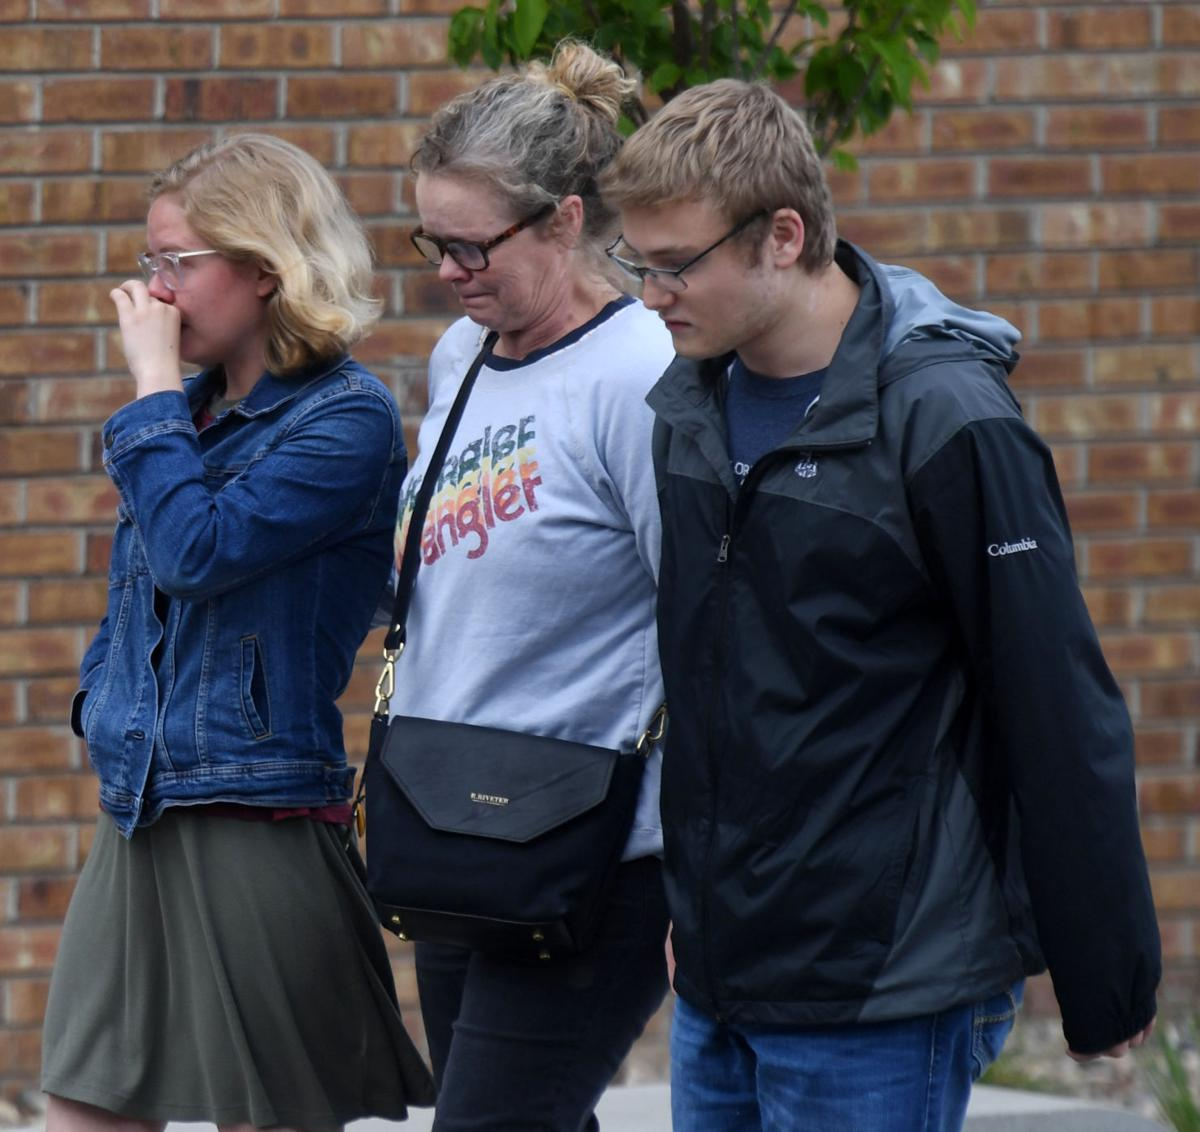 Stem School Highlands Ranch Shooting Suspect Played Guitar: Highlands Ranch School Shooting Suspect Facing First